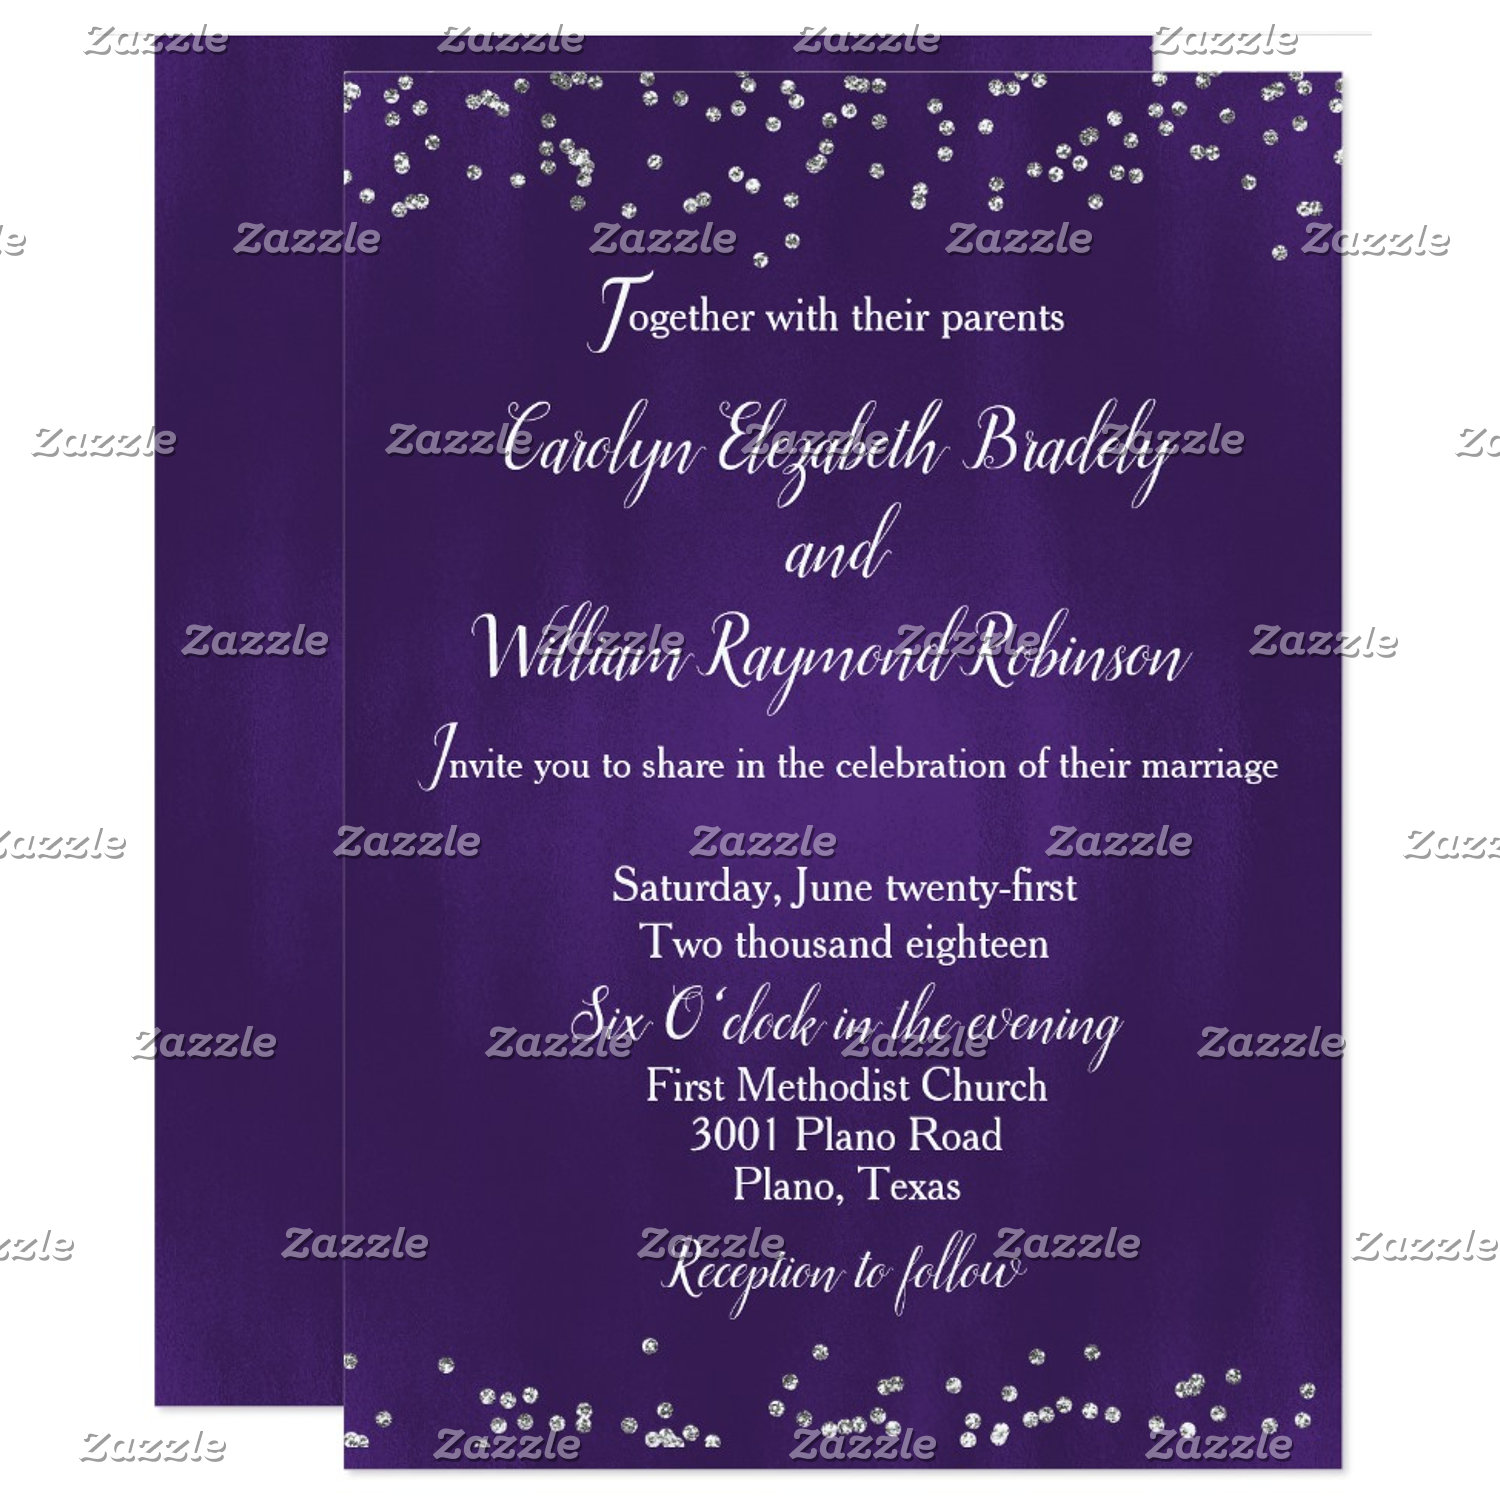 Ultra Violet Wedding Products